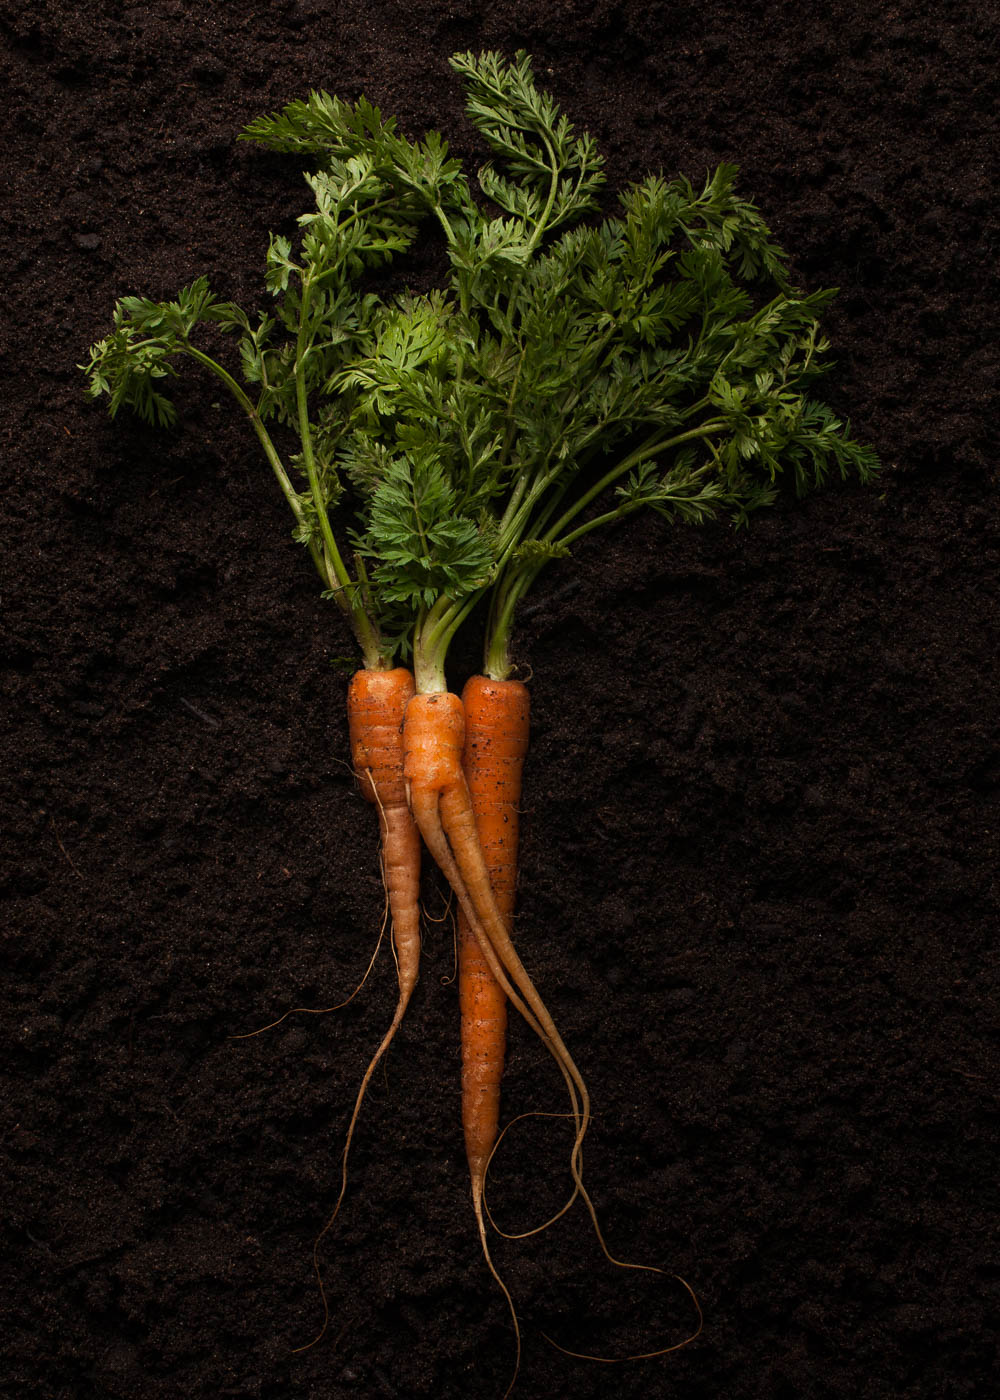 organic carrots with leaves on a soil background